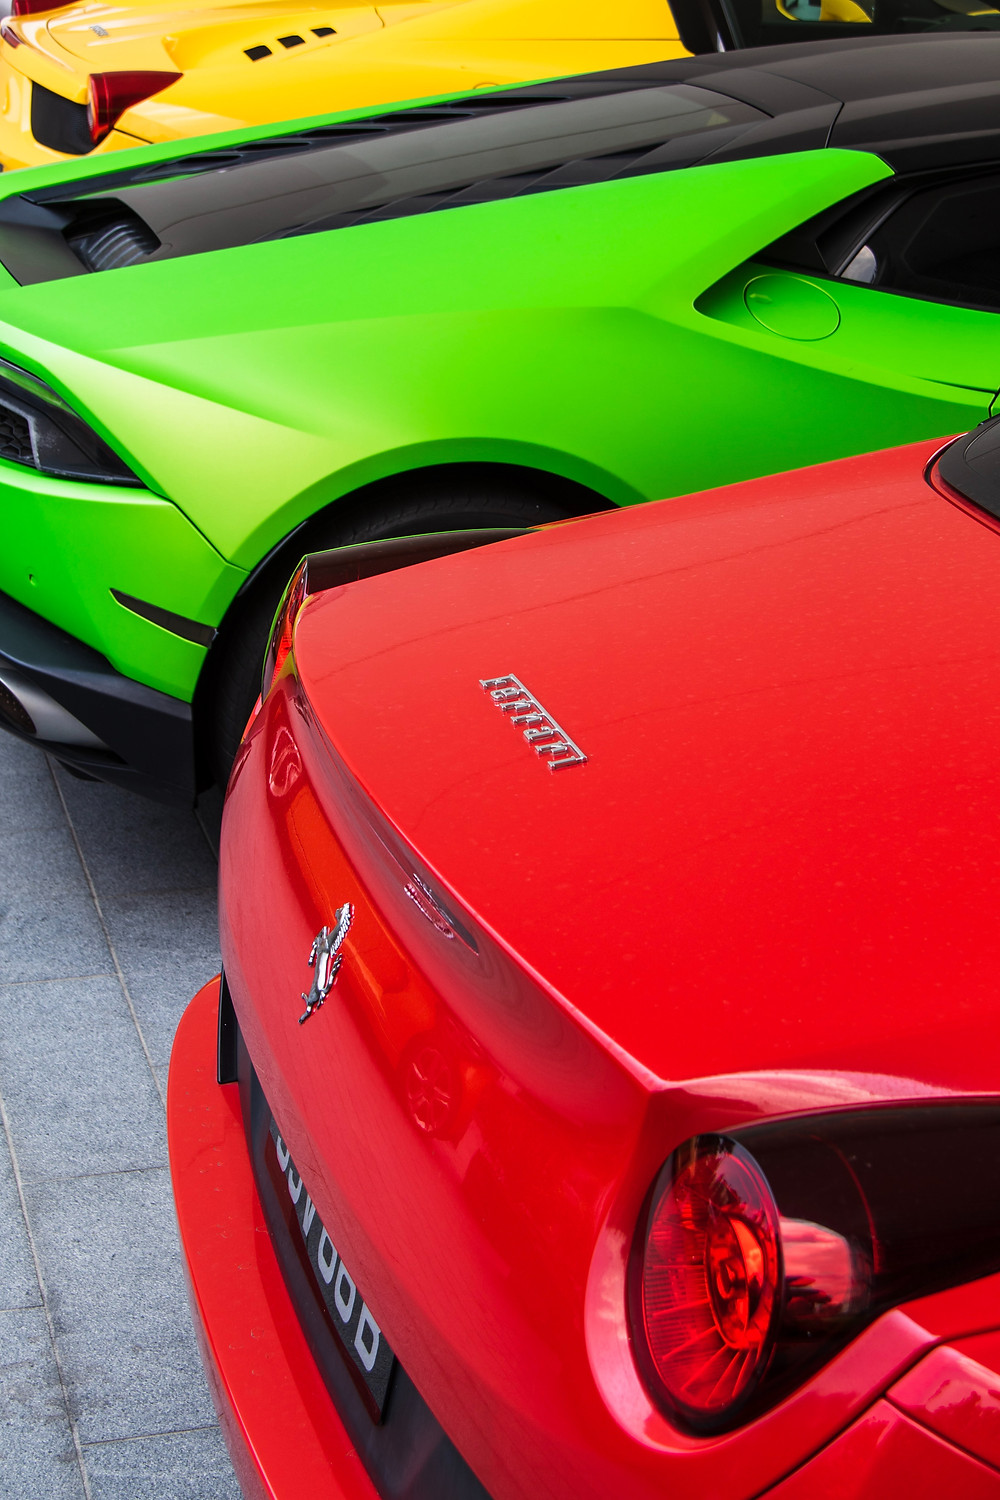 Red, green, and yellow luxury cars lined up in showroom.